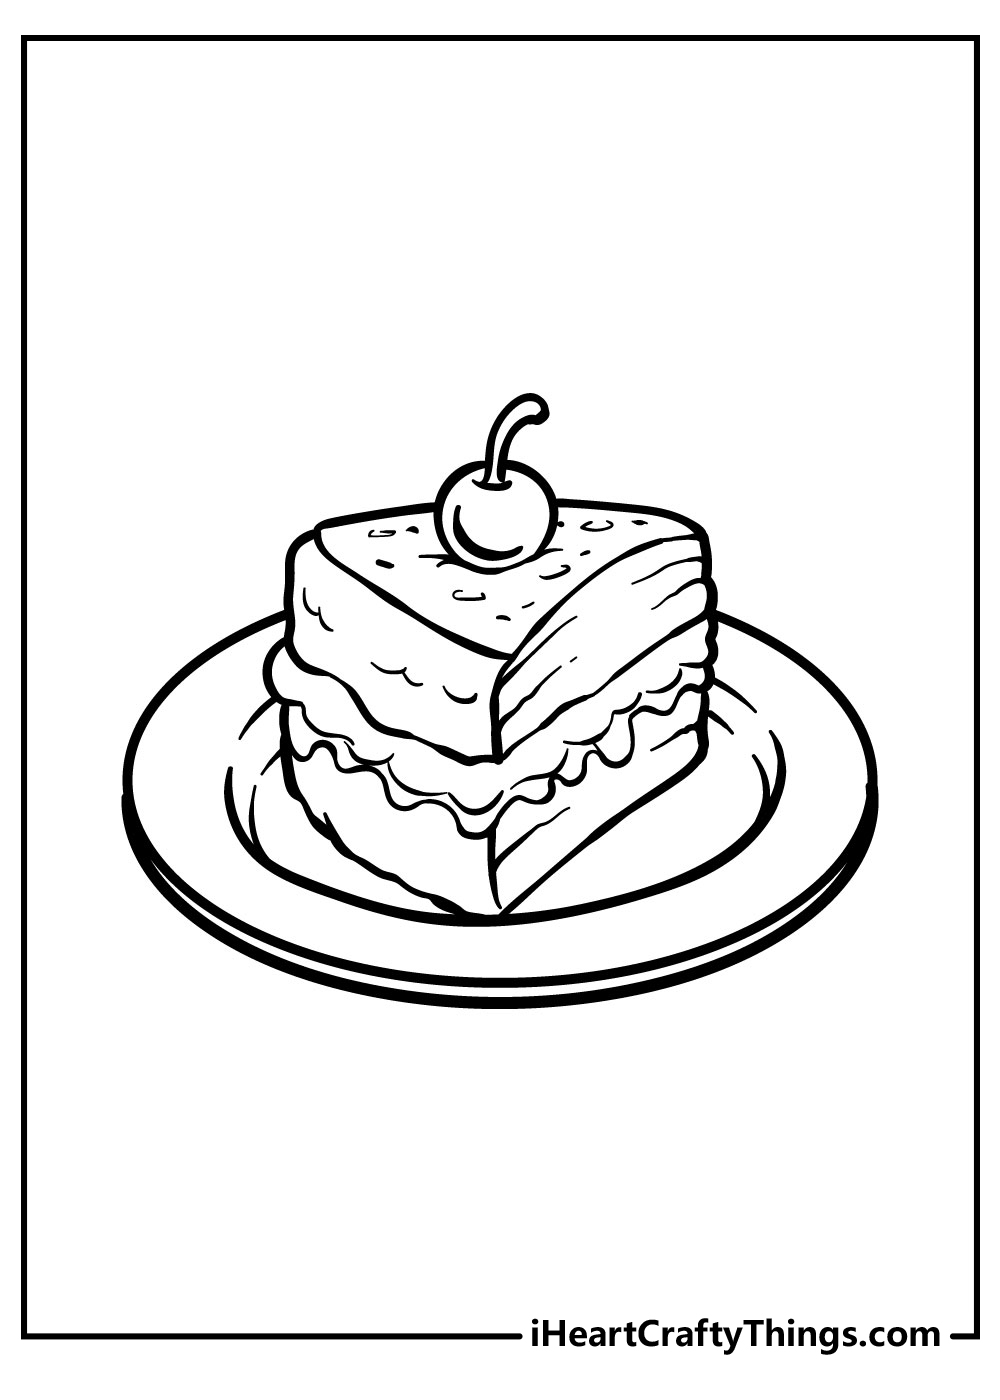 Cake Coloring Pages Updated 2021